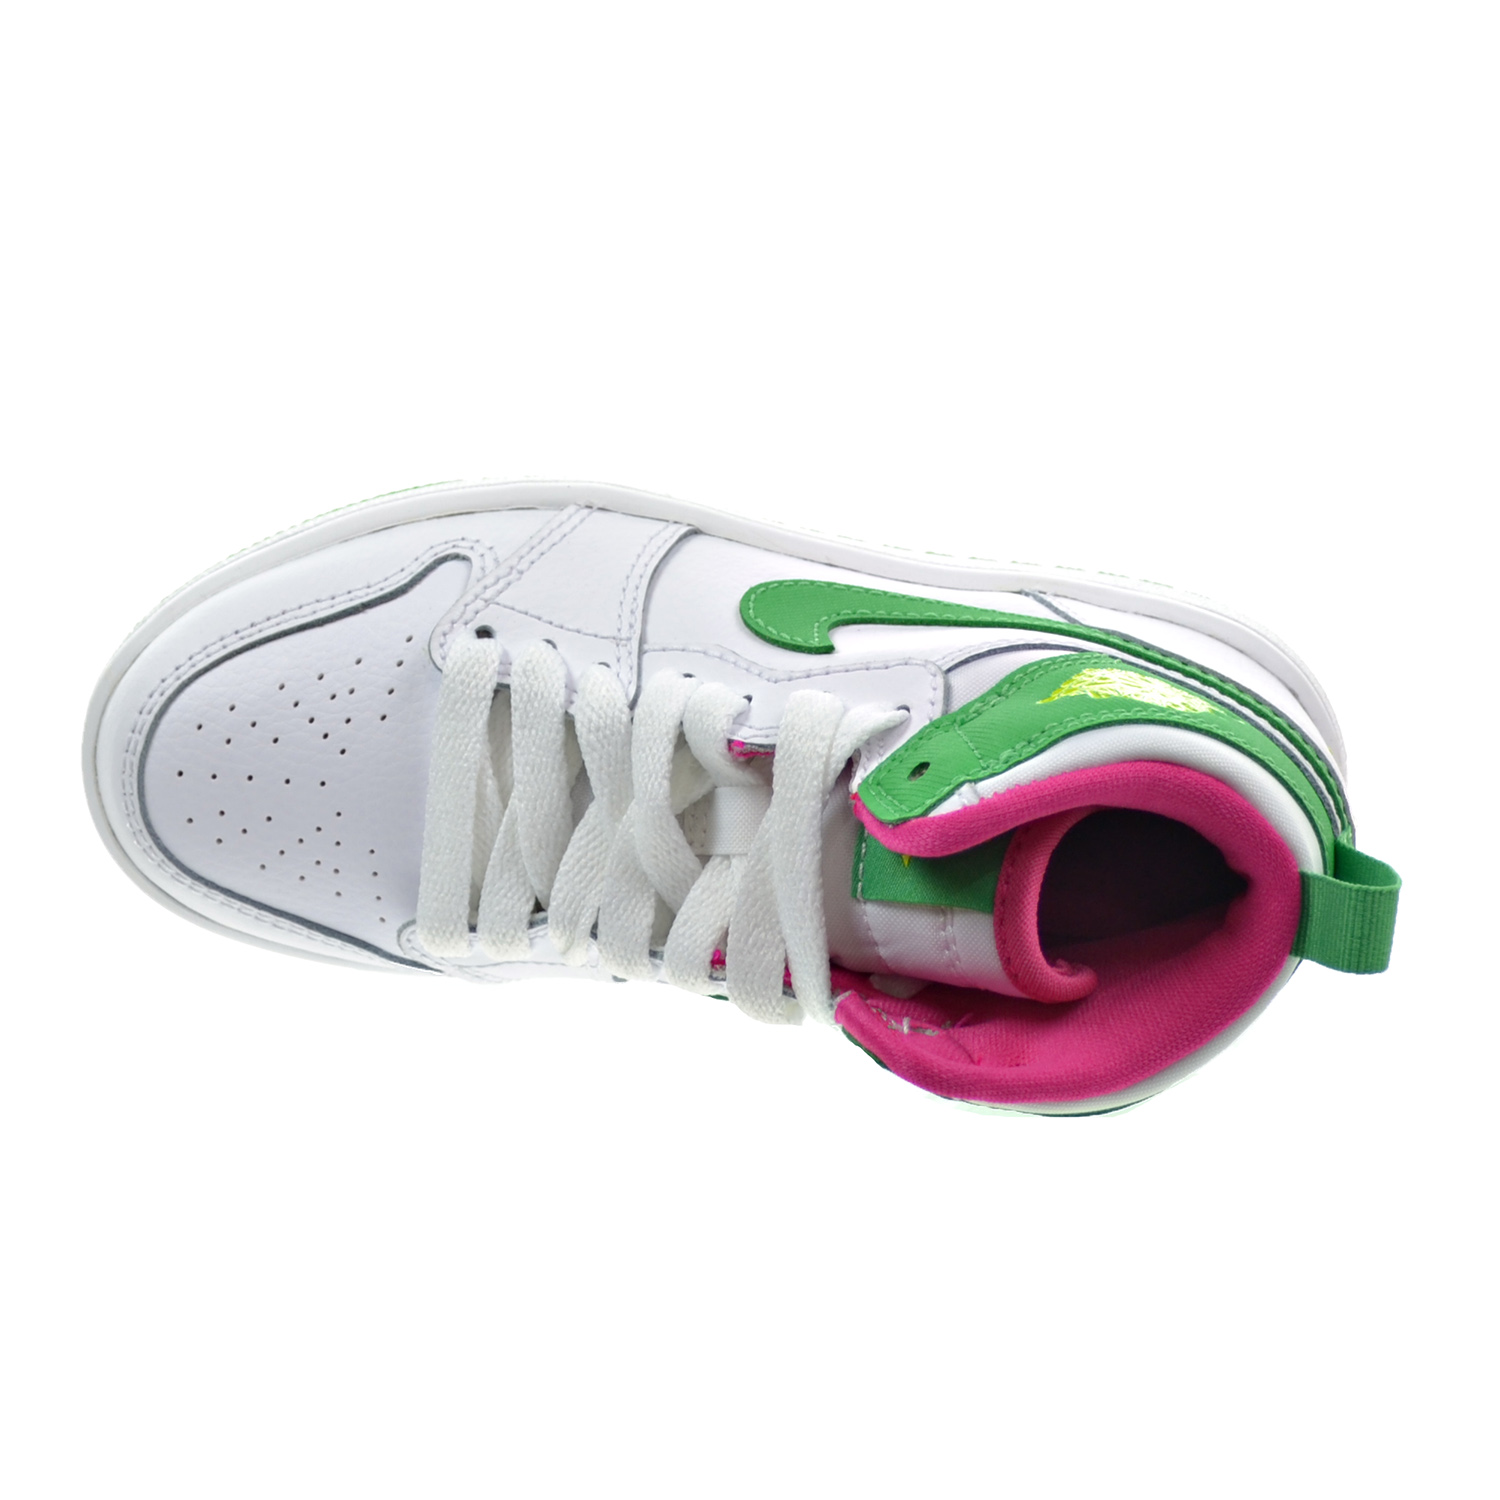 59b0dc833cf Jordan 1 Retro High GP Little Kid s Shoes White Gamma Green Vivid Pink Cyber  705321-134